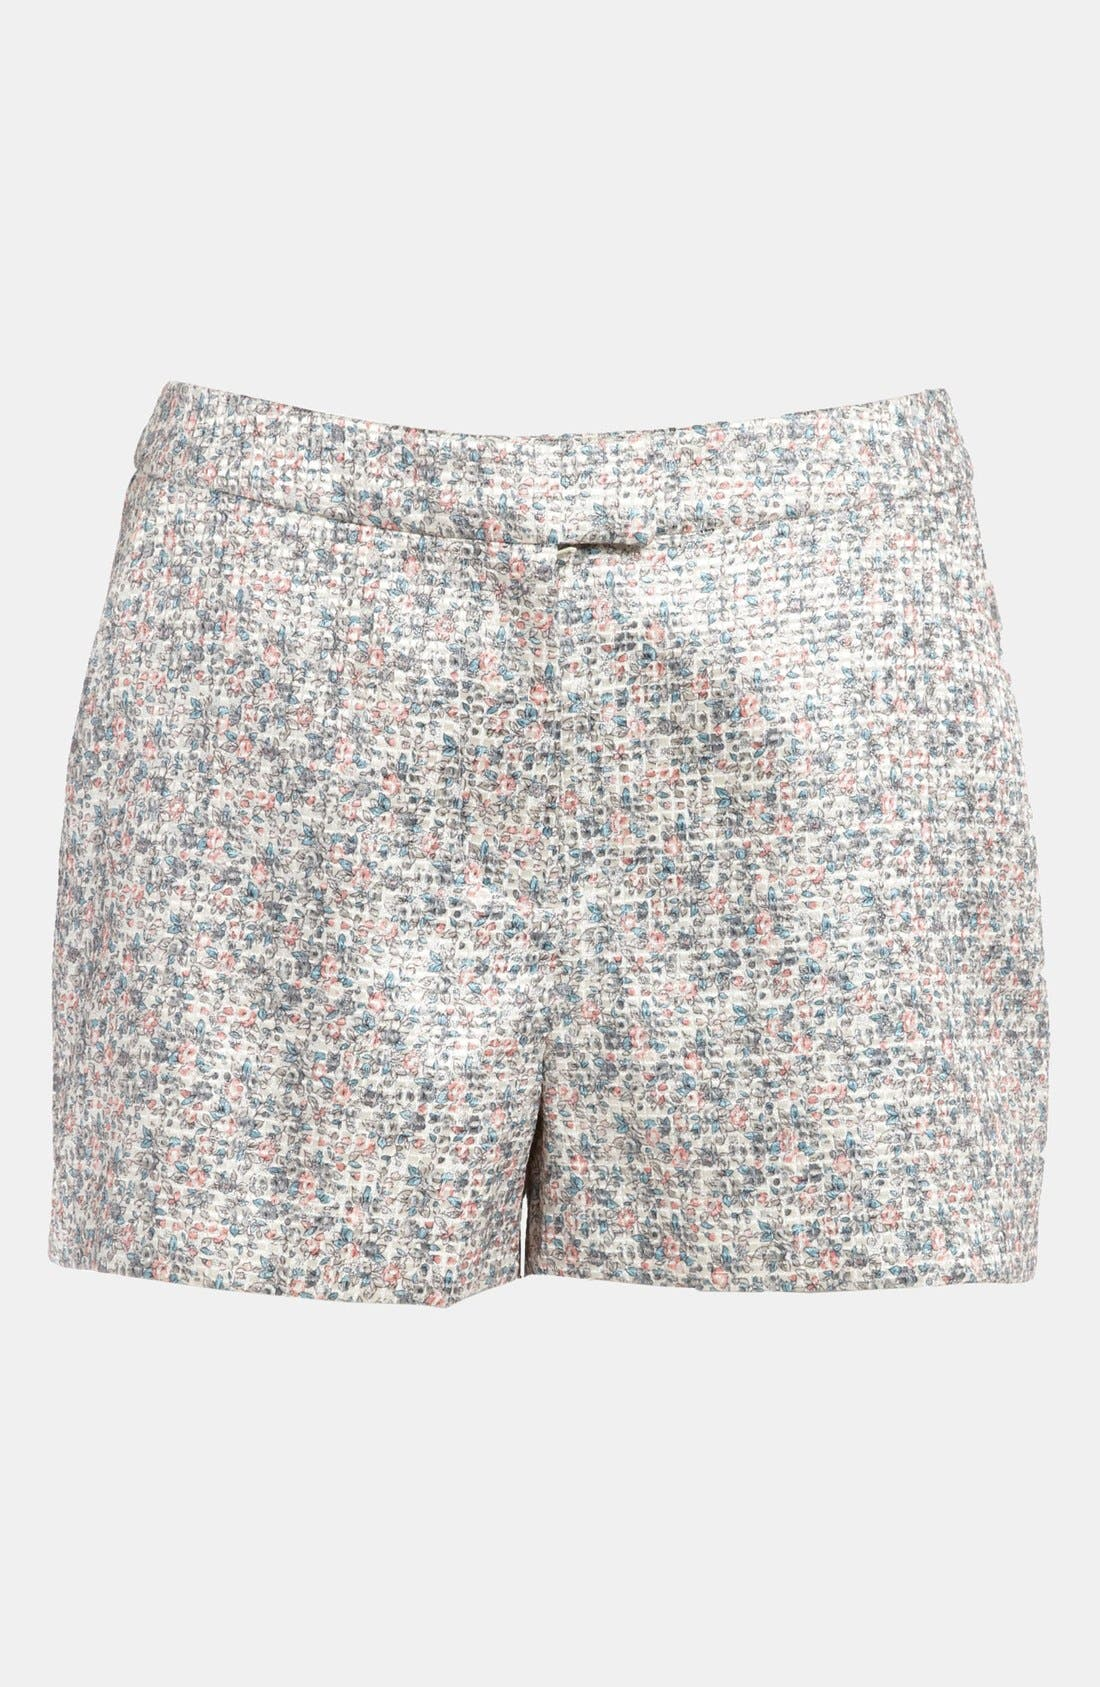 Alternate Image 2  - ASTR High Waist Floral Jacquard Shorts